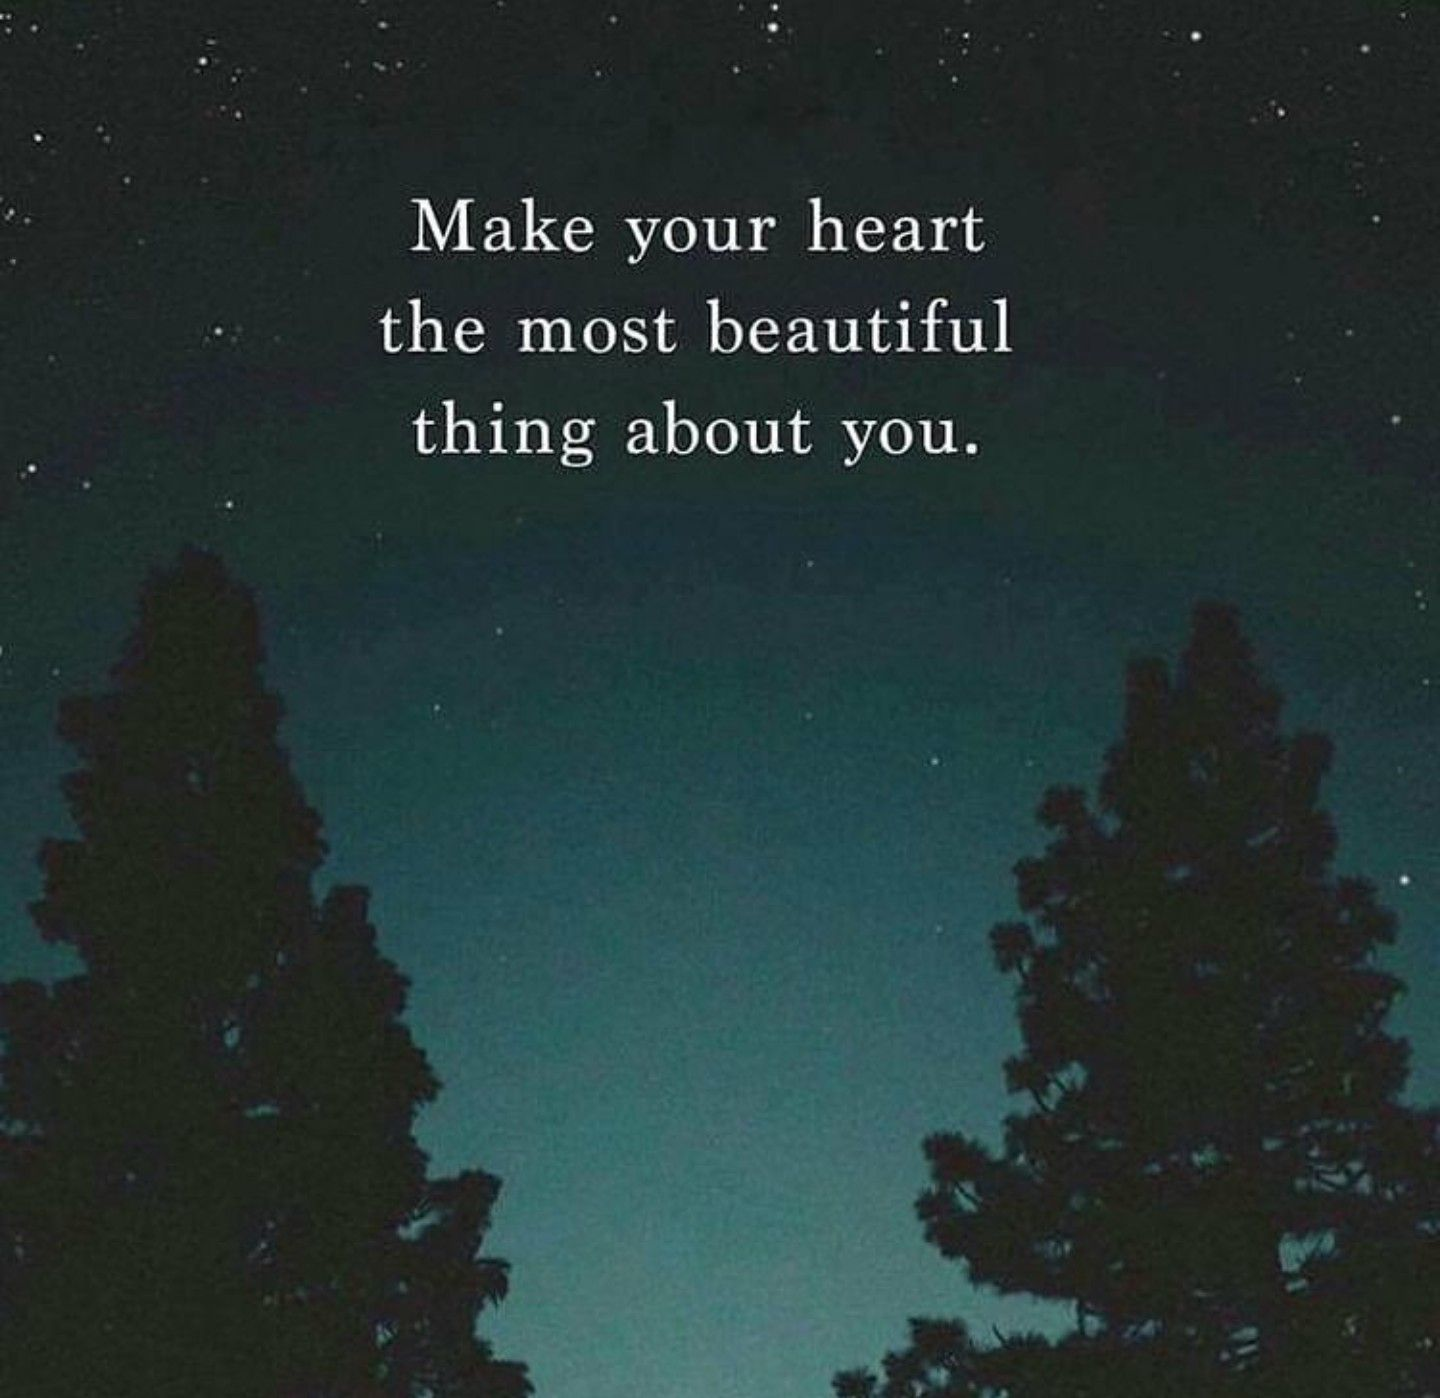 Positive Quotes About Love Pinadriane Stade On Great Quotes  Pinterest  Thoughts